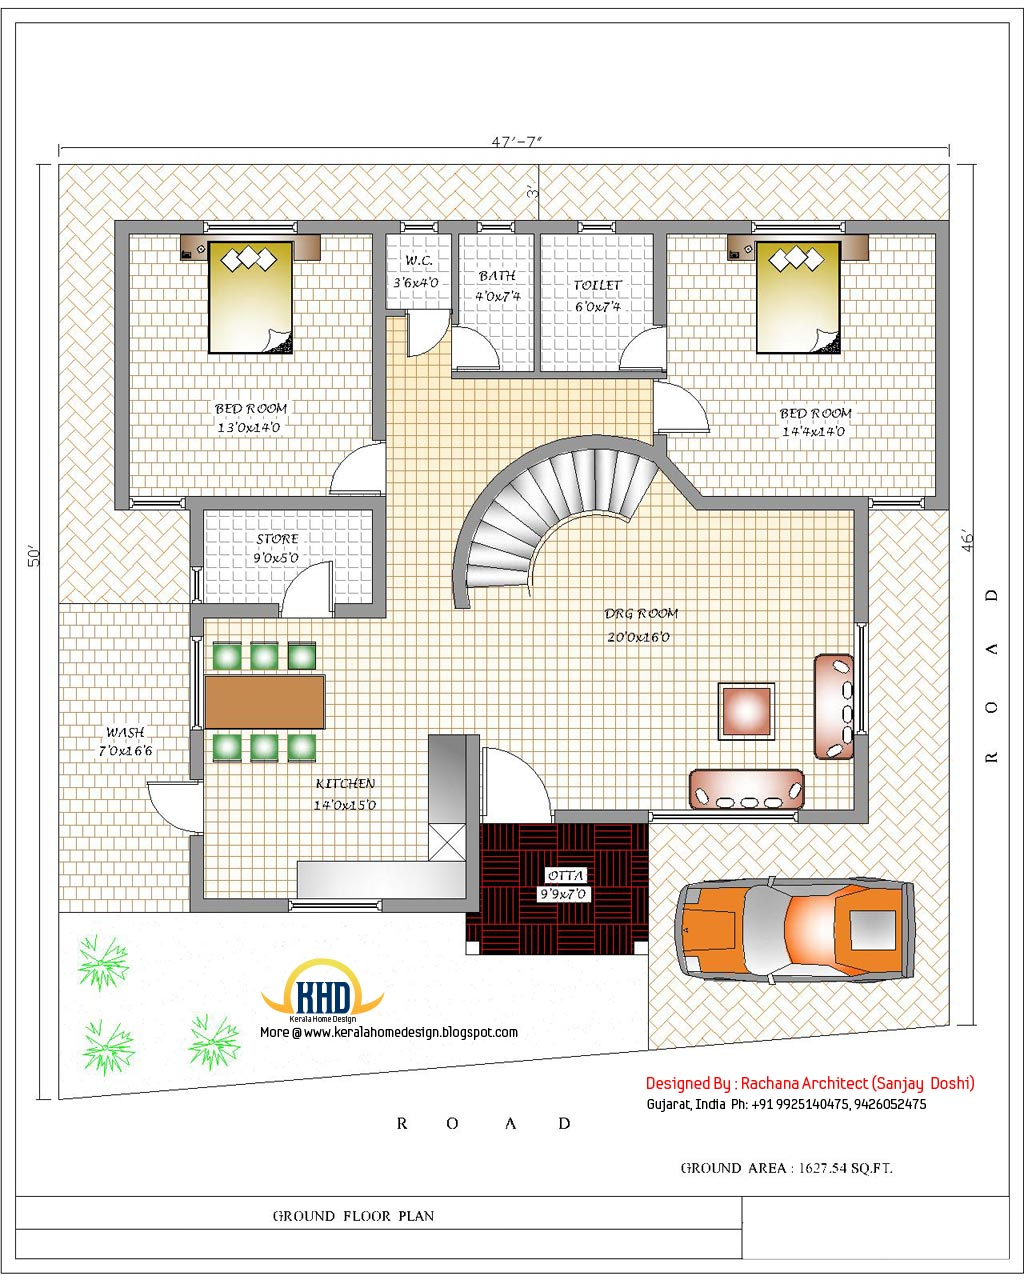 Indian Home Design: India Home Design With House Plans - 3200 Sq.Ft.